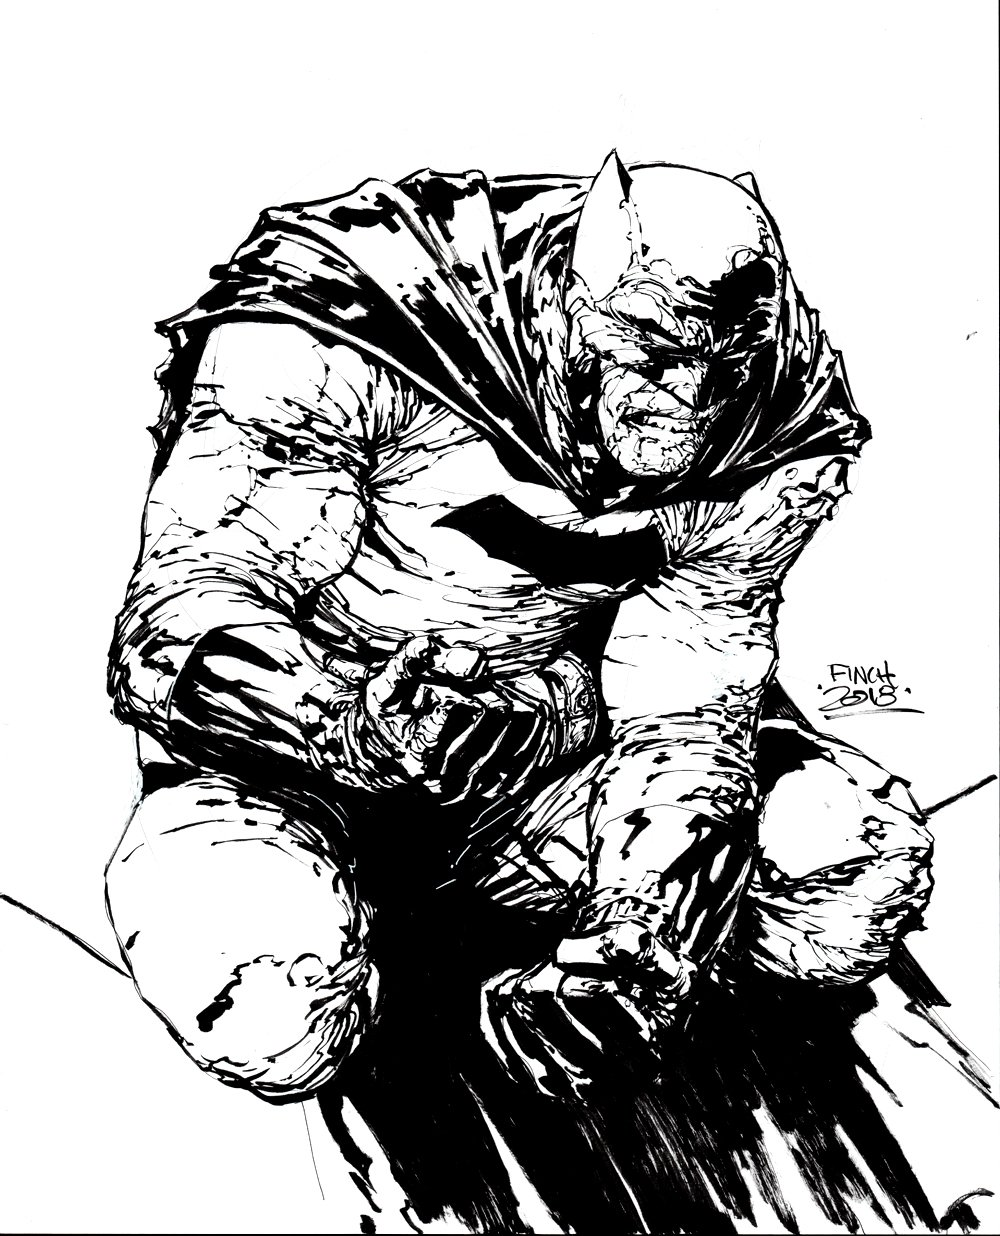 Frank Miller Style Batman Pinup (SOLD LIVE ON 'DUELING DEALERS OF COMIC ART' EPISODE #7 PODCAST ON 3-10-2021 (RE-WATCH OUR LIVE ART SELLING PODCAST HERE!)